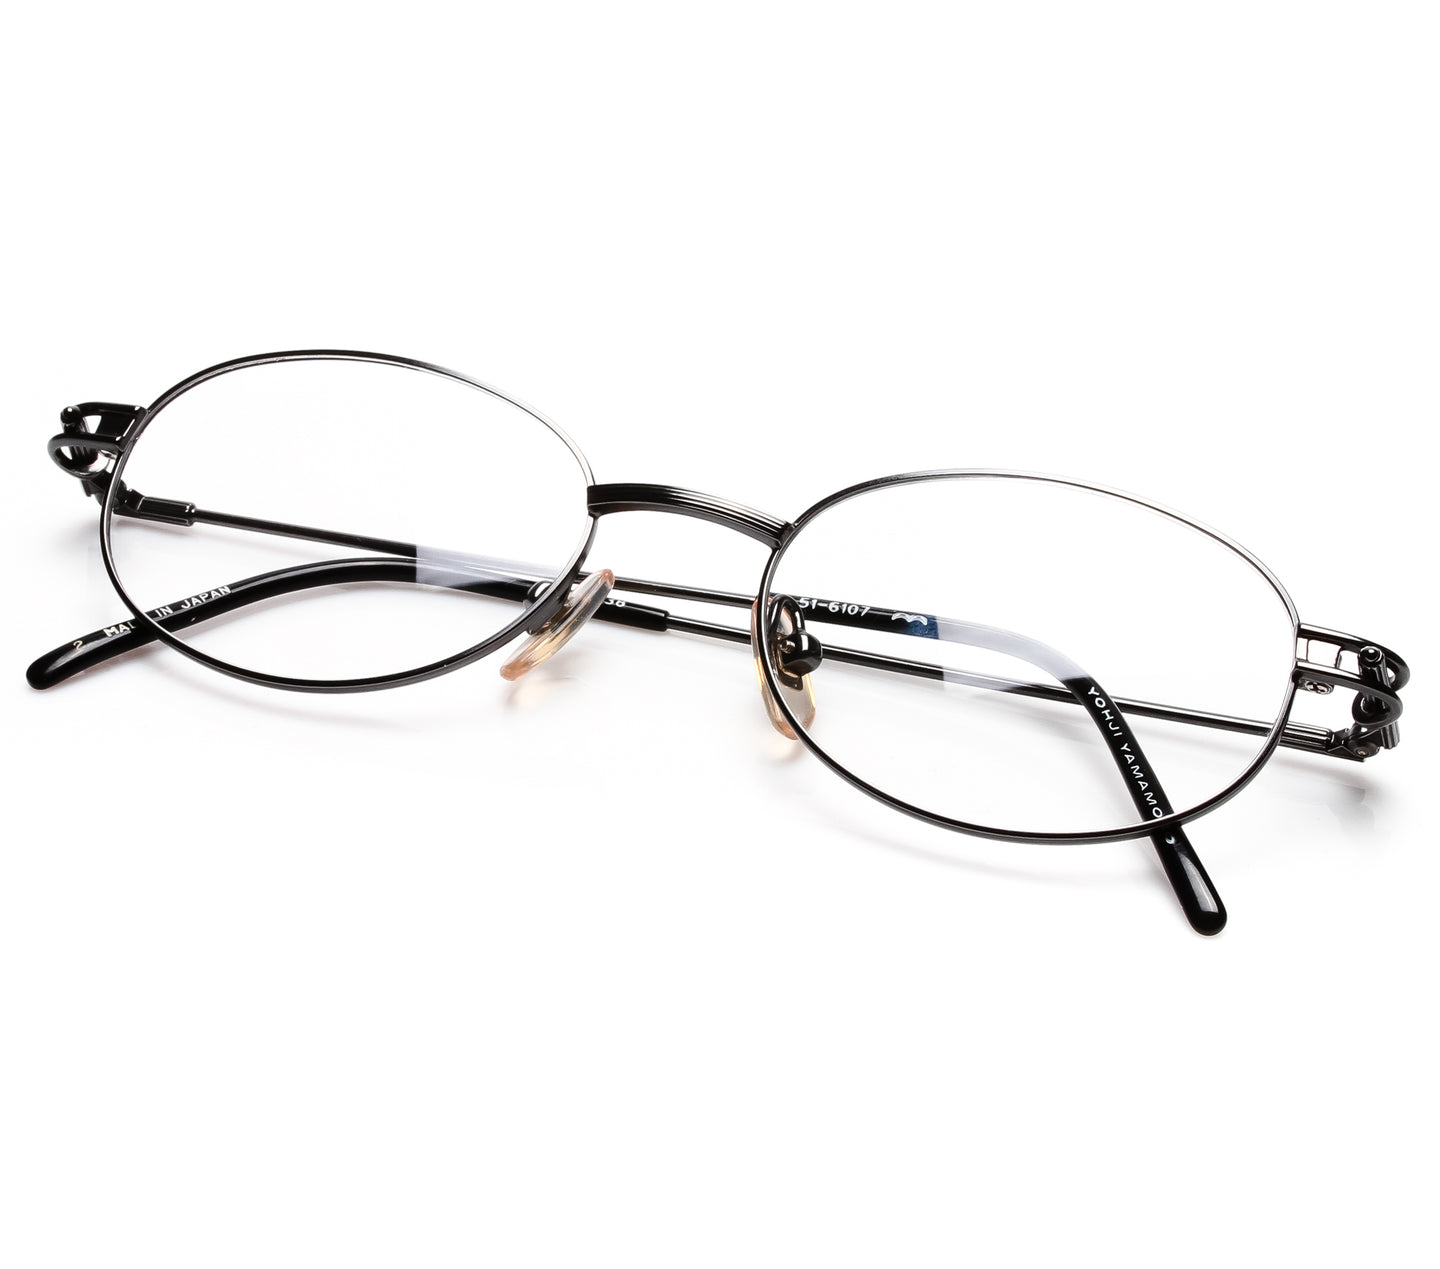 Yohji Yamamoto 51 6107 Thumbnail, Yohji Yamamoto , glasses frames, eyeglasses online, eyeglass frames, mens glasses, womens glasses, buy glasses online, designer eyeglasses, vintage sunglasses, retro sunglasses, vintage glasses, sunglass, eyeglass, glasses, lens, vintage frames company, vf